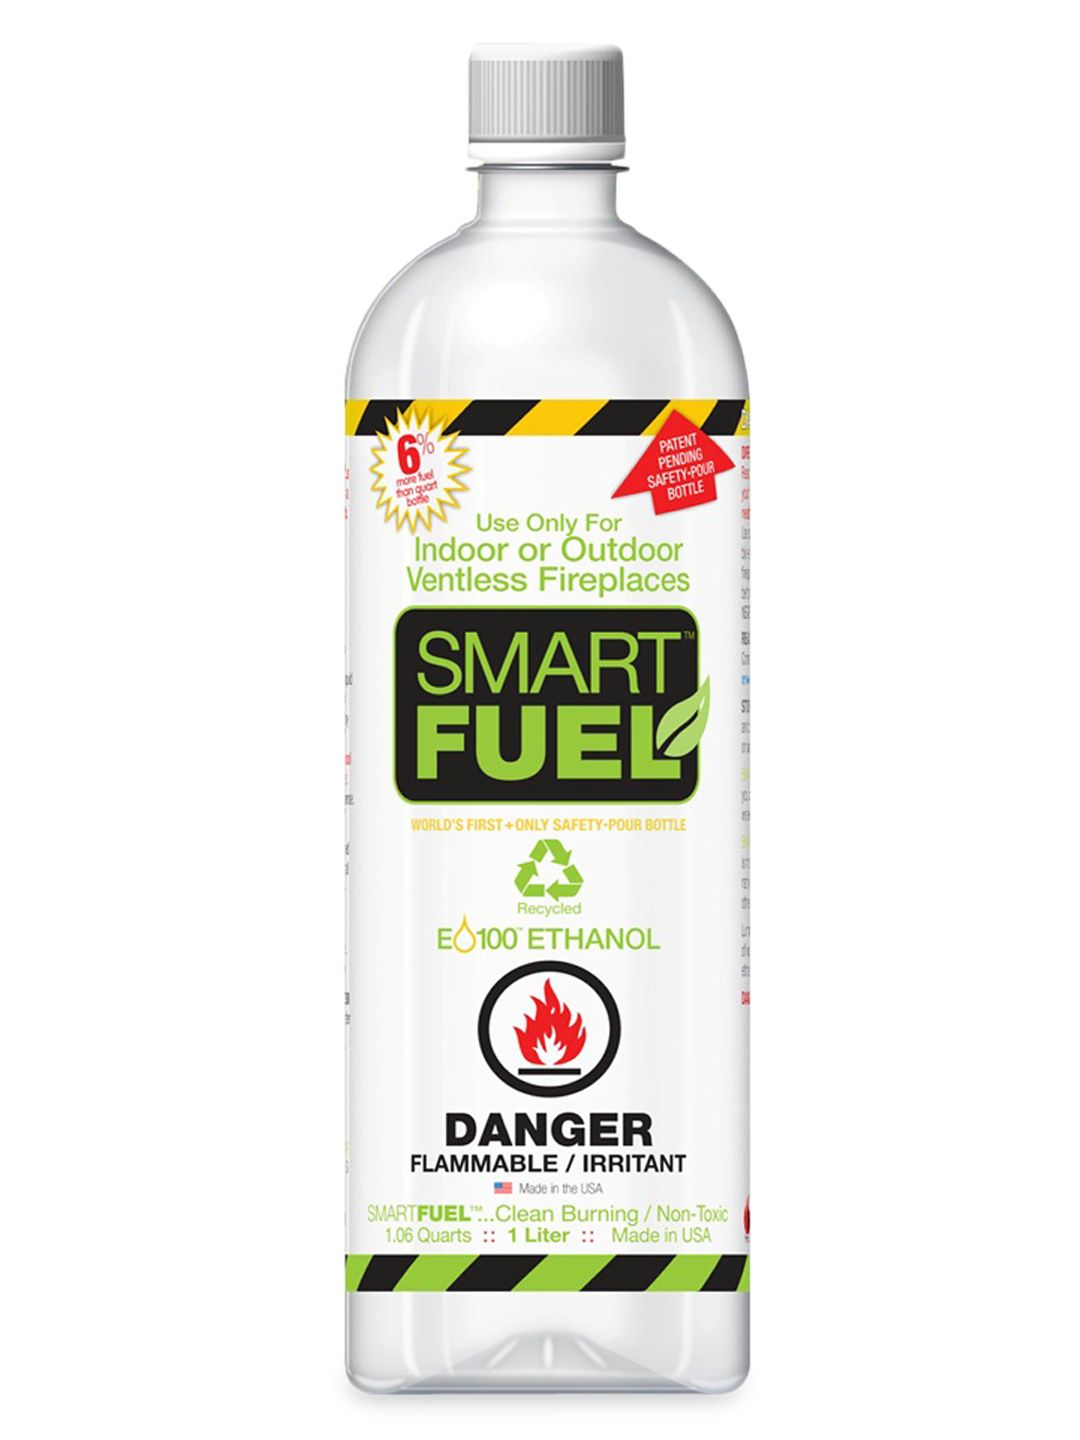 Anywhere Fireplace Smart Fuel Liquid Bio Ethanol 12 Liter Bottles